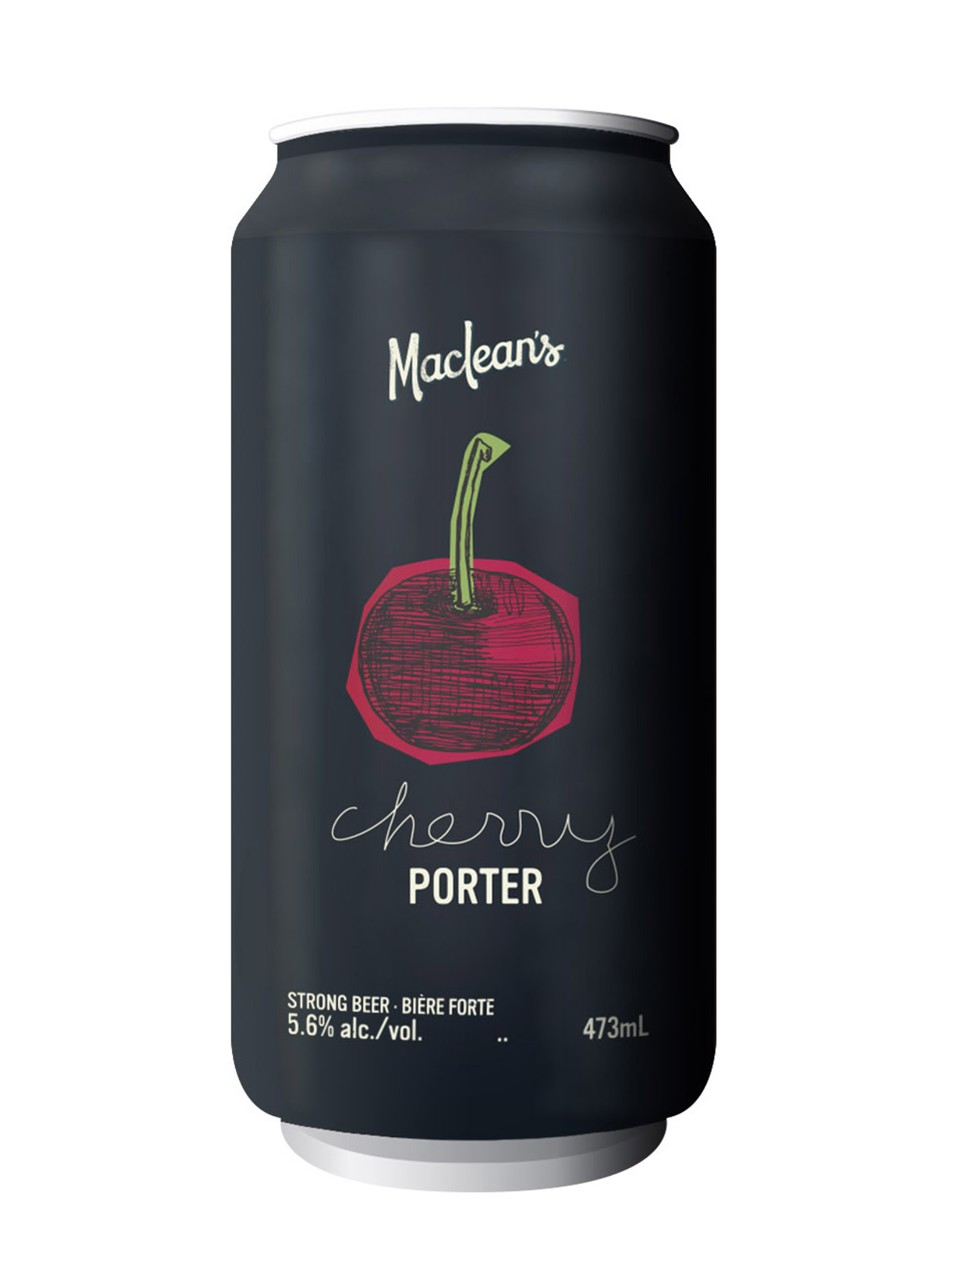 MacLean's Cherry Porter from LCBO